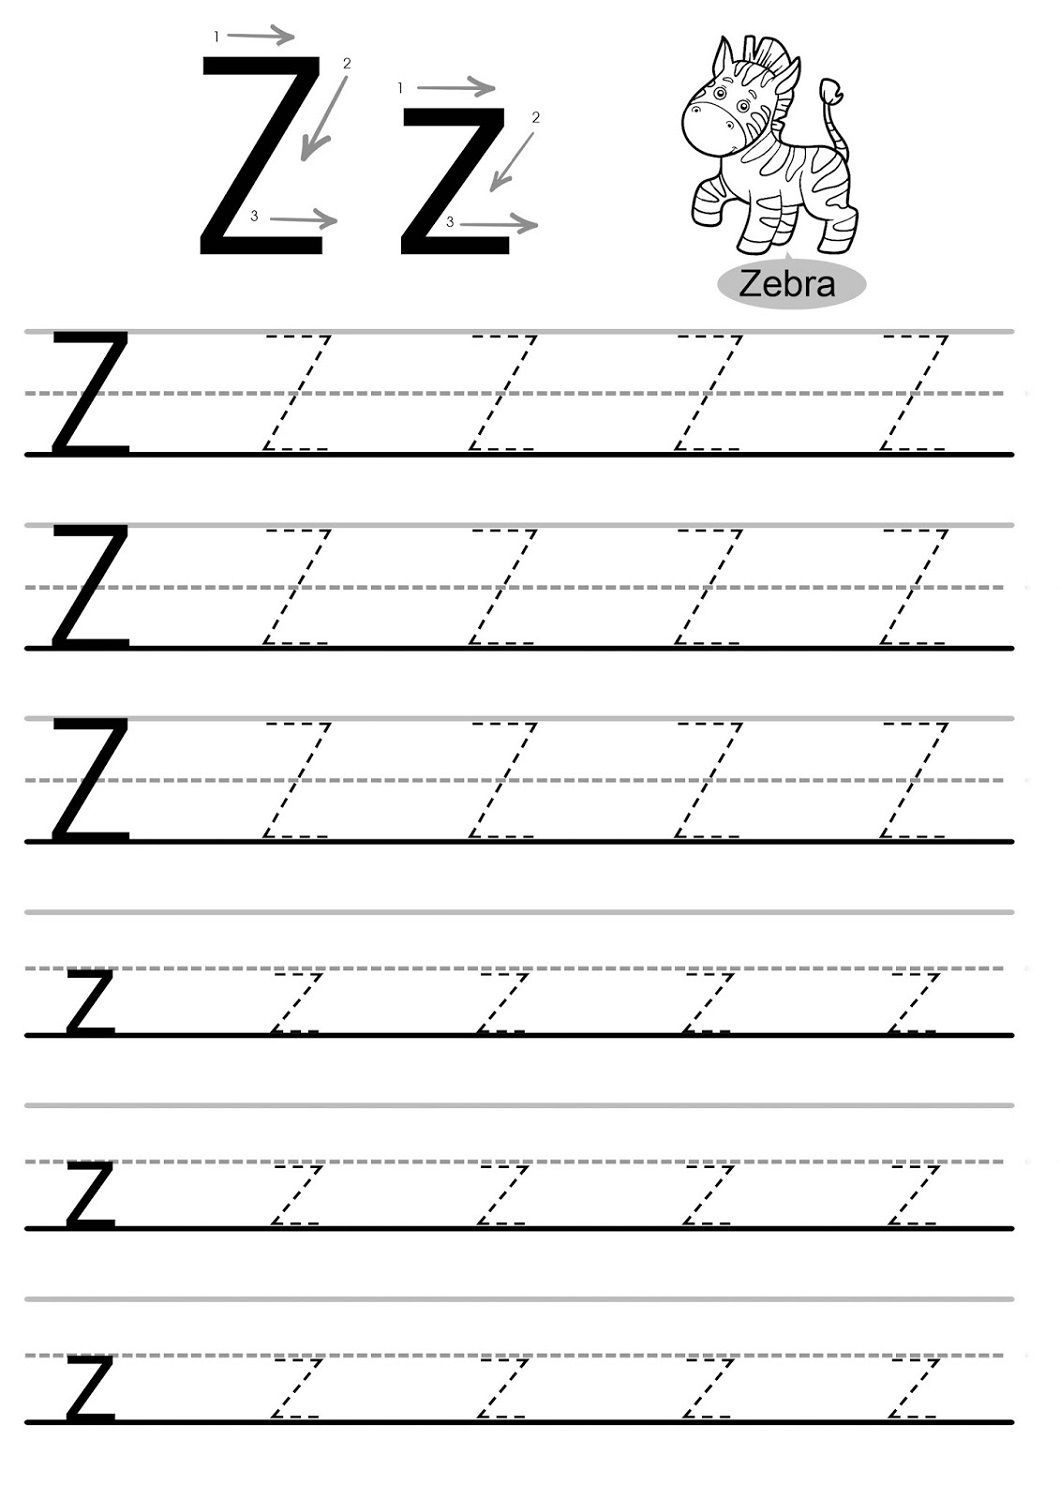 4 Traceable Name Worksheets Printable In